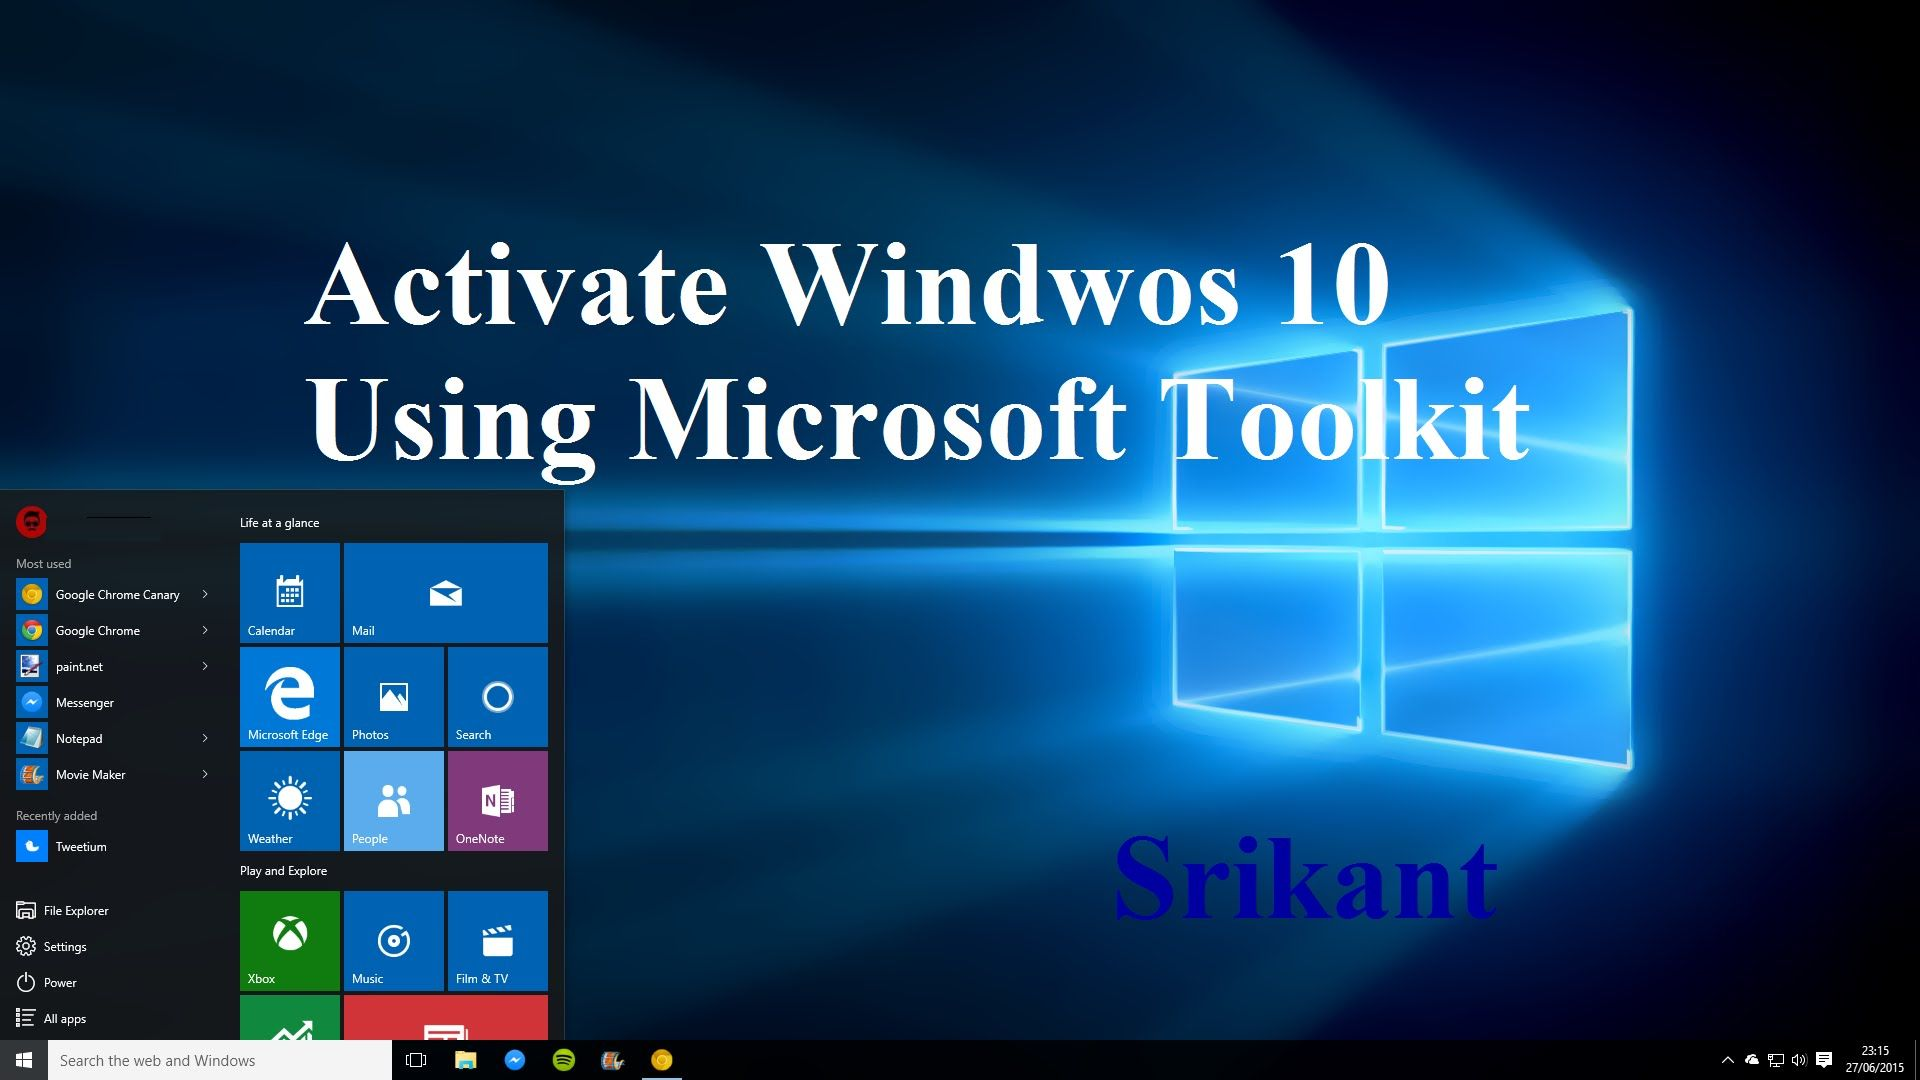 using microsoft toolkit to activate windows 10